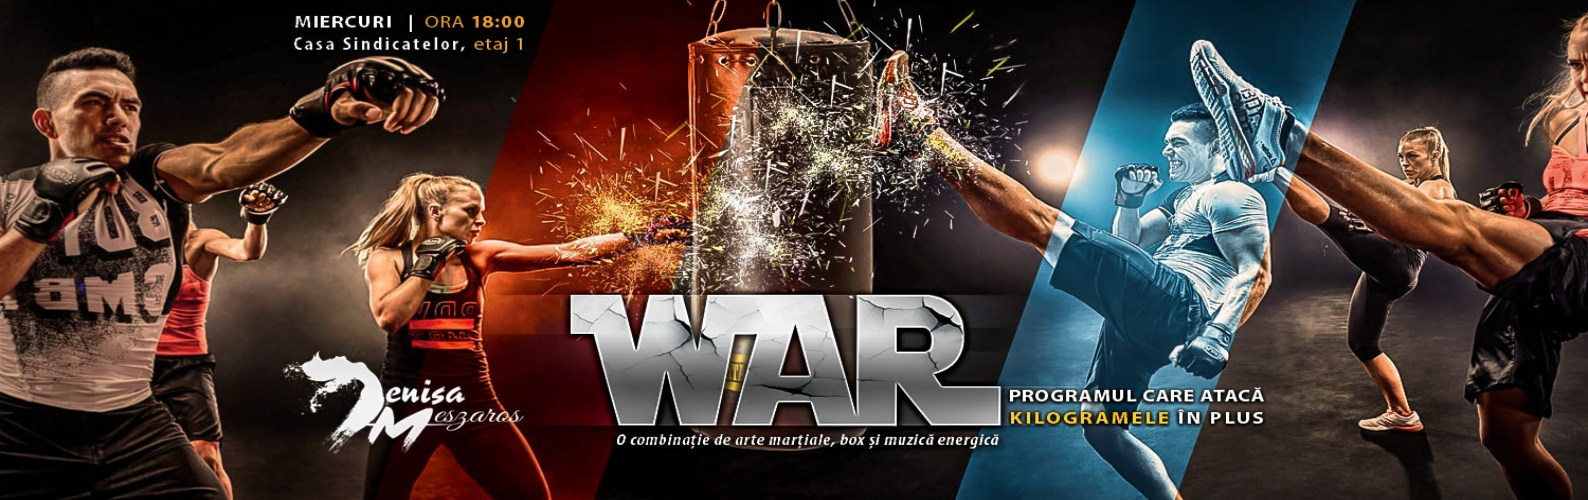 war-program-fitness-cover-rsz